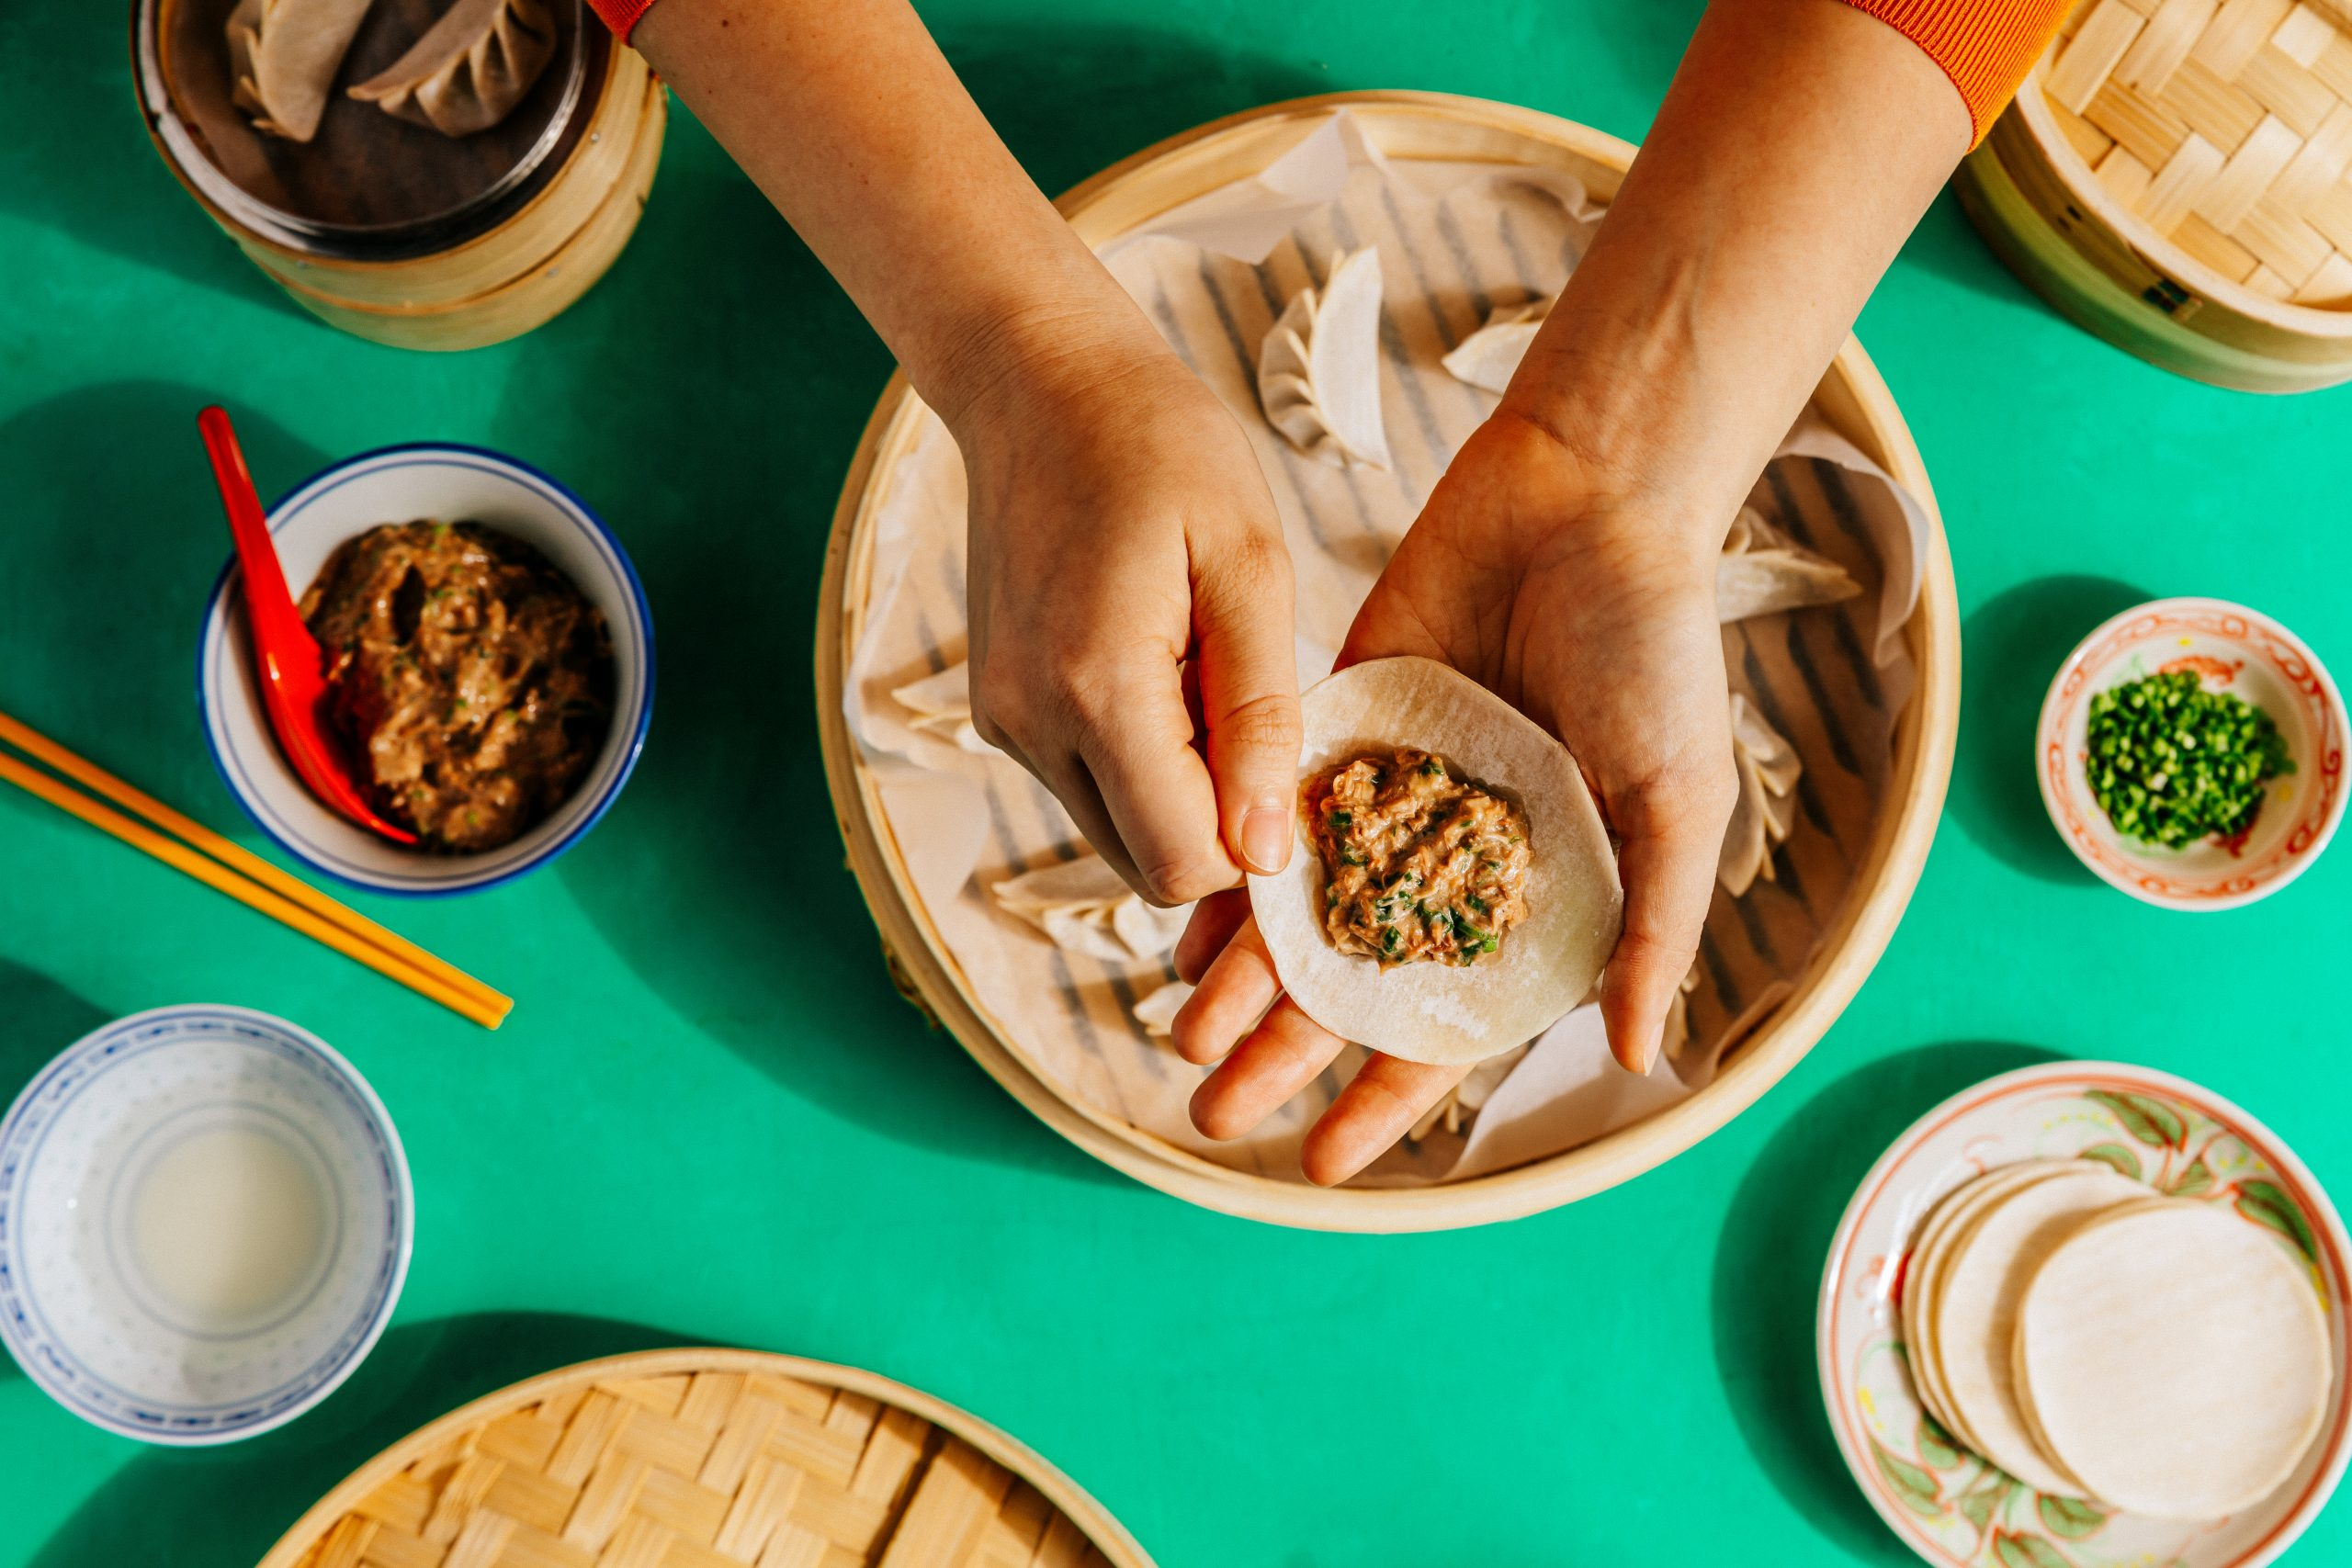 creating-asias-first-whole-plant-based-alternative-meat-brand